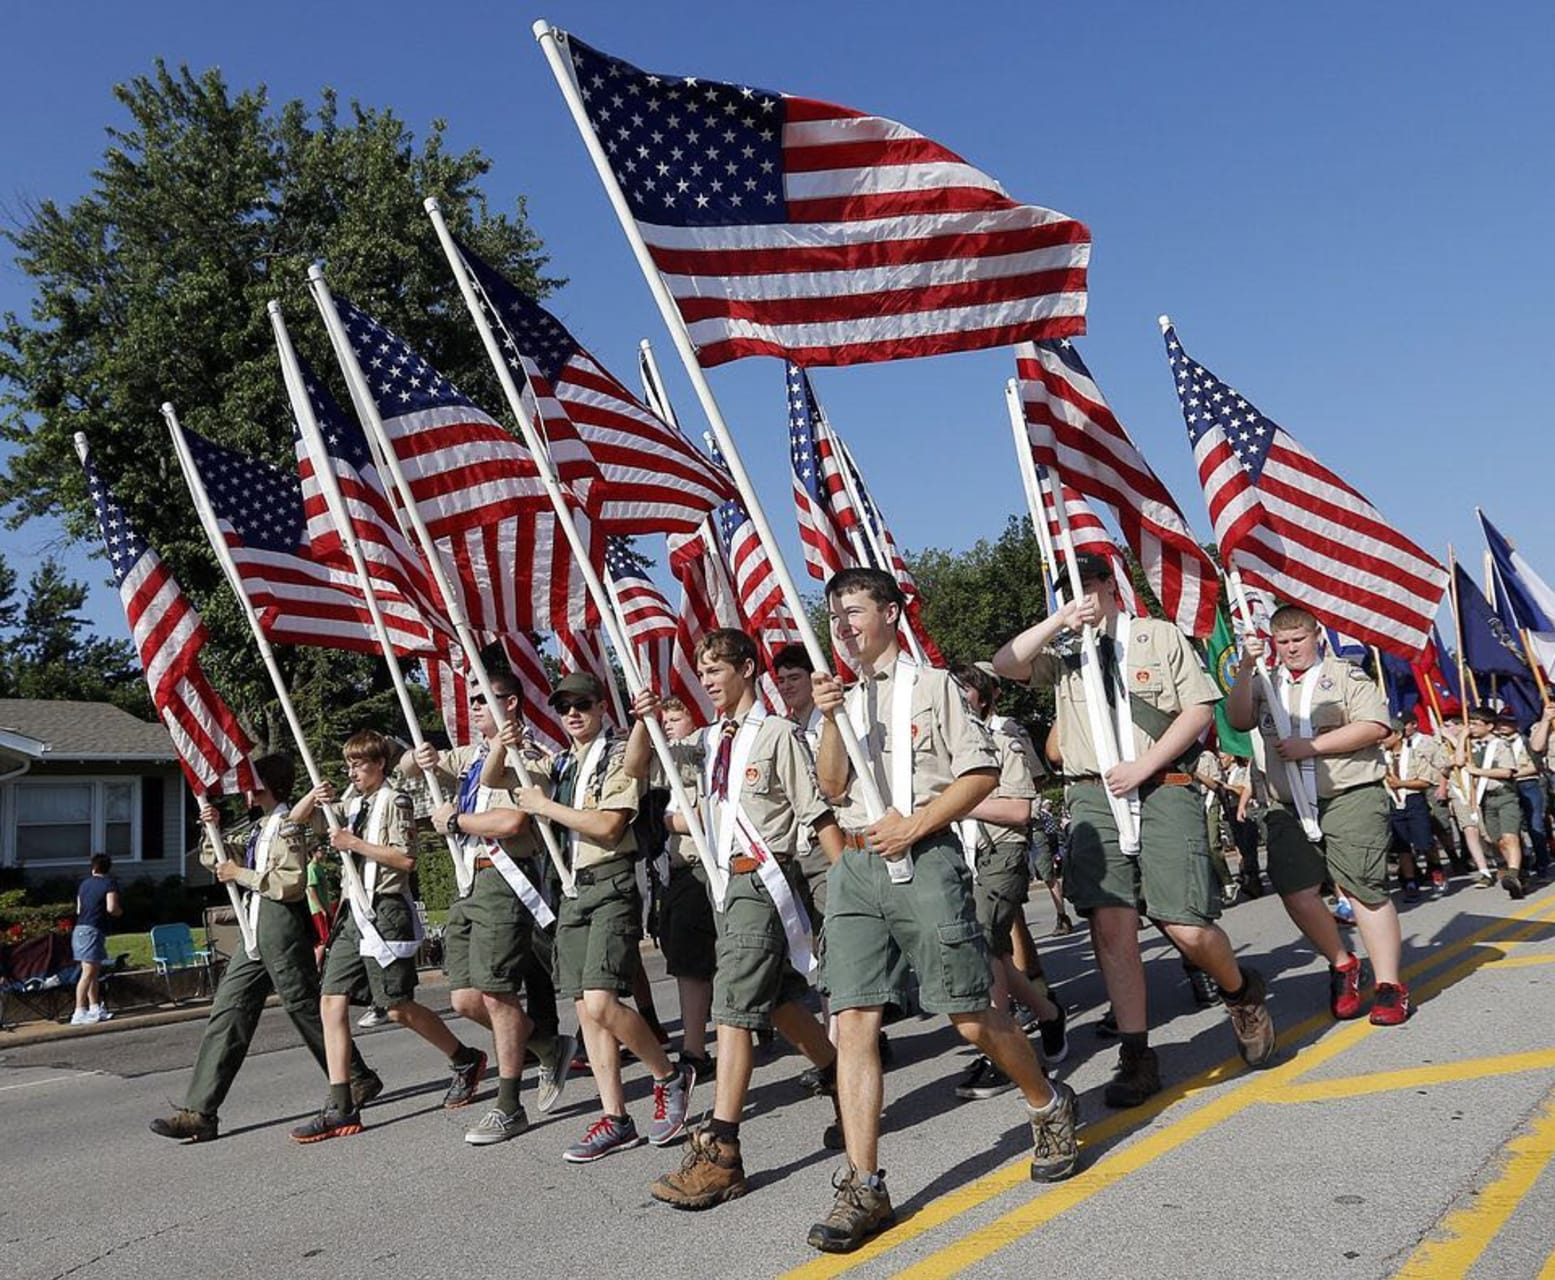 Oklahoma City - Come Join The Parade:  Celebrate American Independence At the Libertyfest Parade